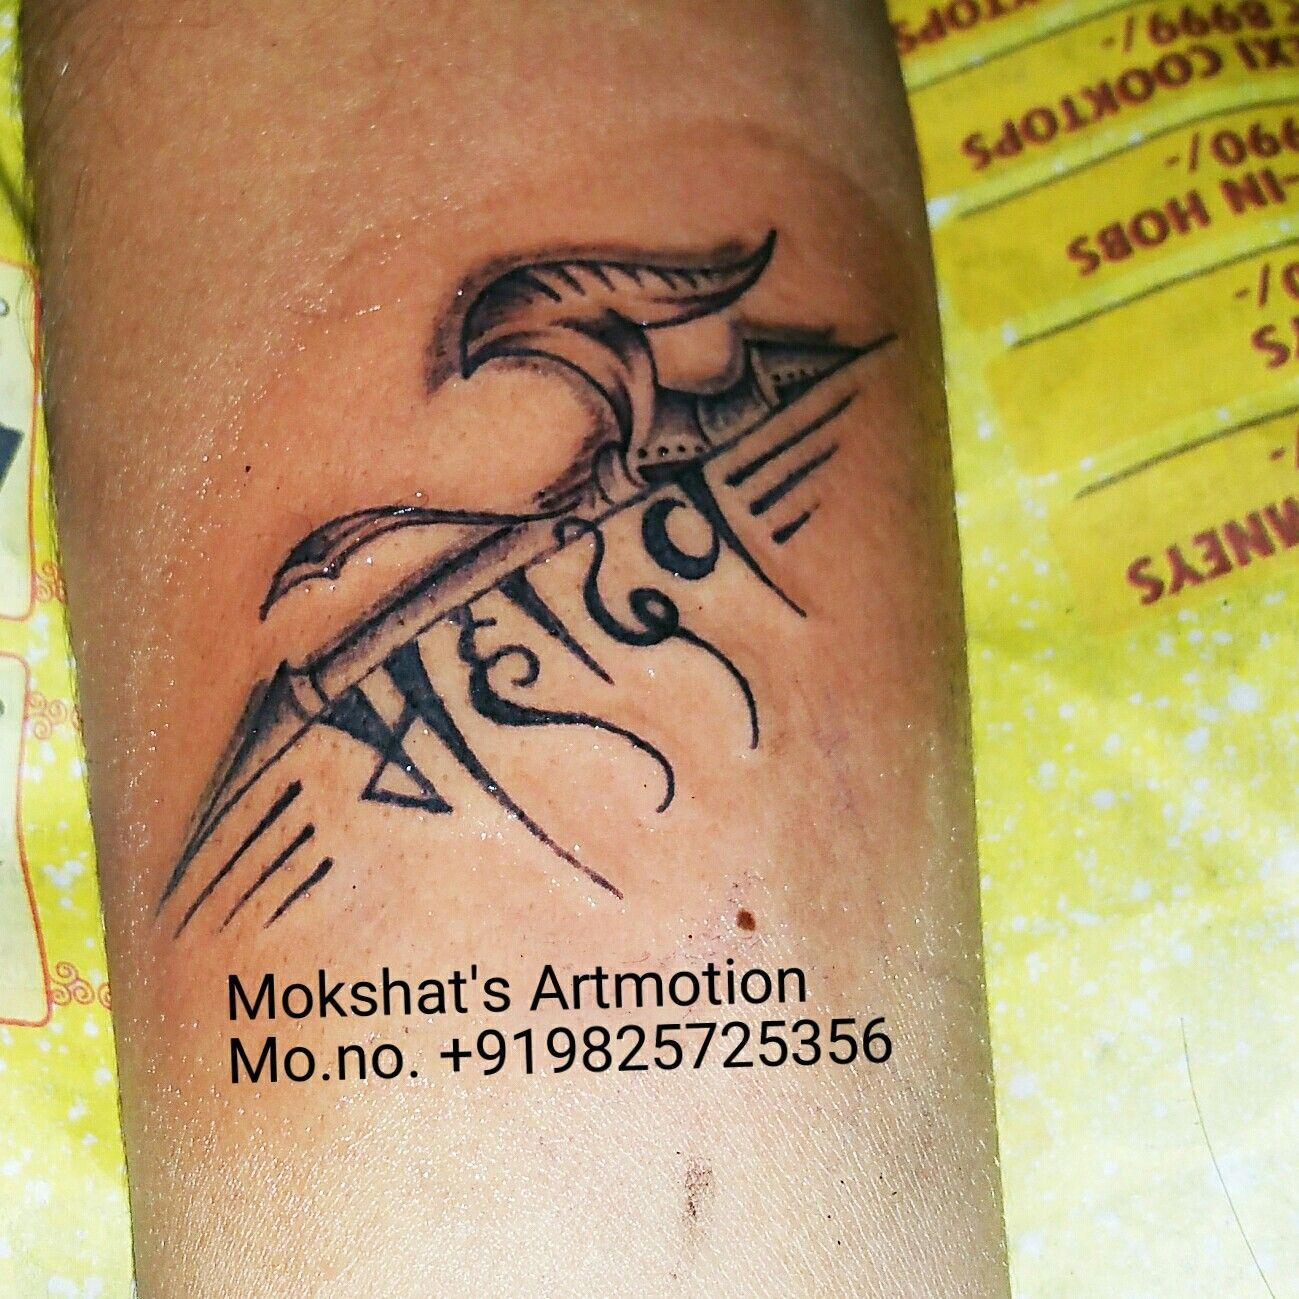 Tattoo Designs Mahadev: Mahadev Tattoo Designed And Tattooed By Mokshat's